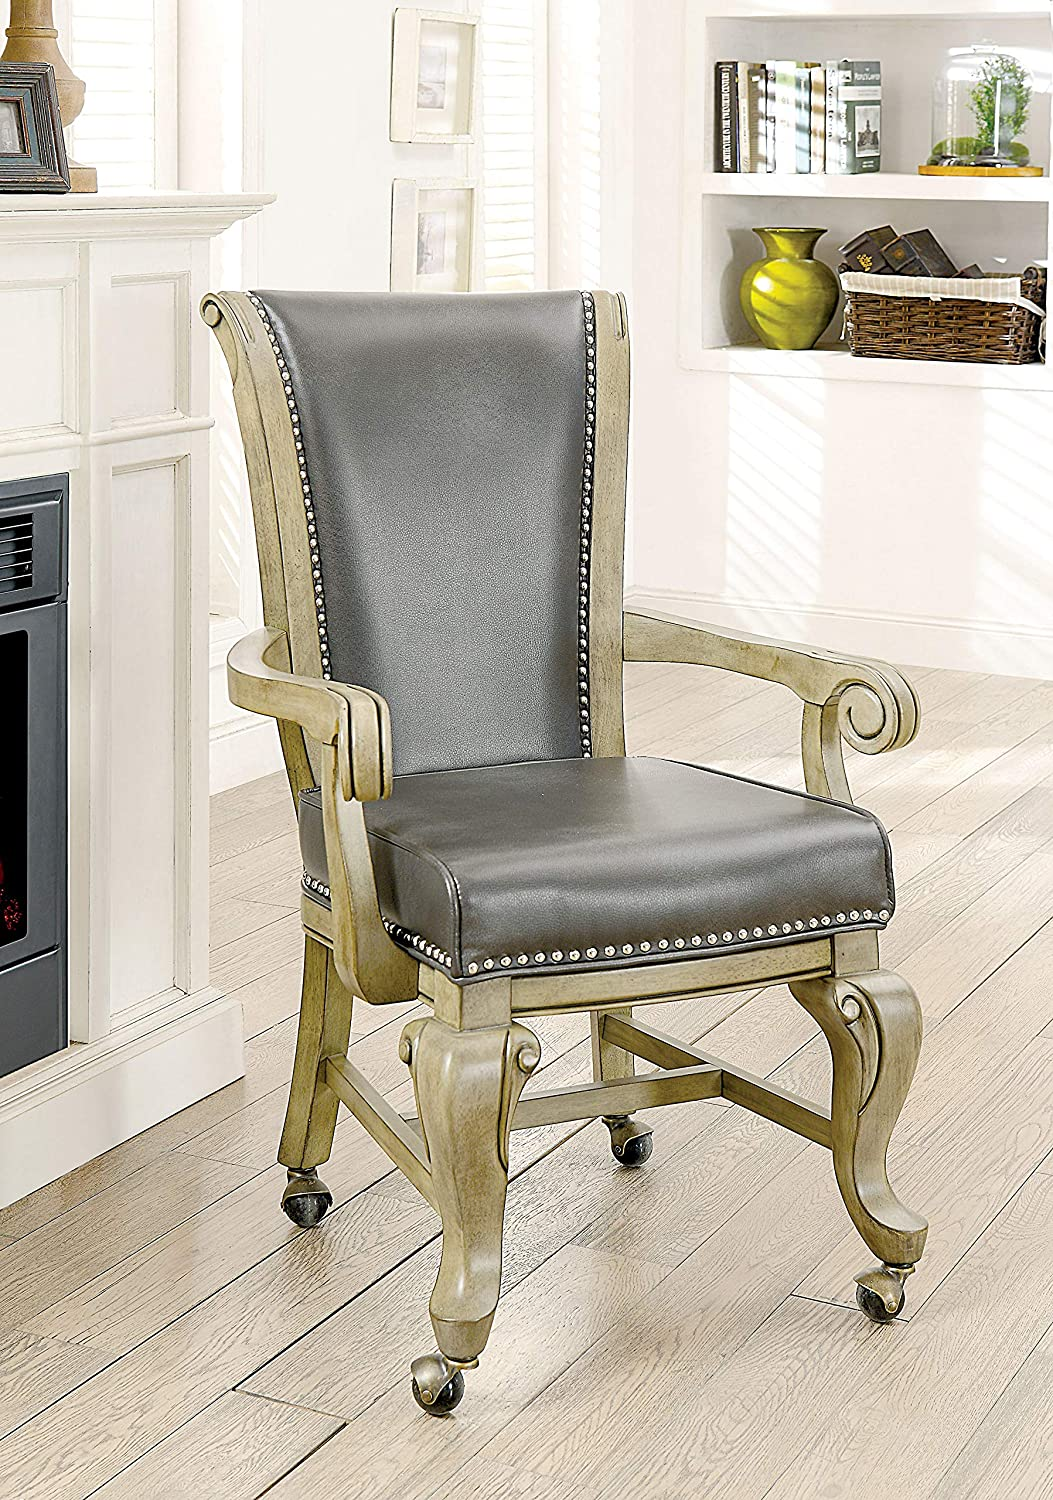 William's Home Furnishing Melina Accent Chair, Gray